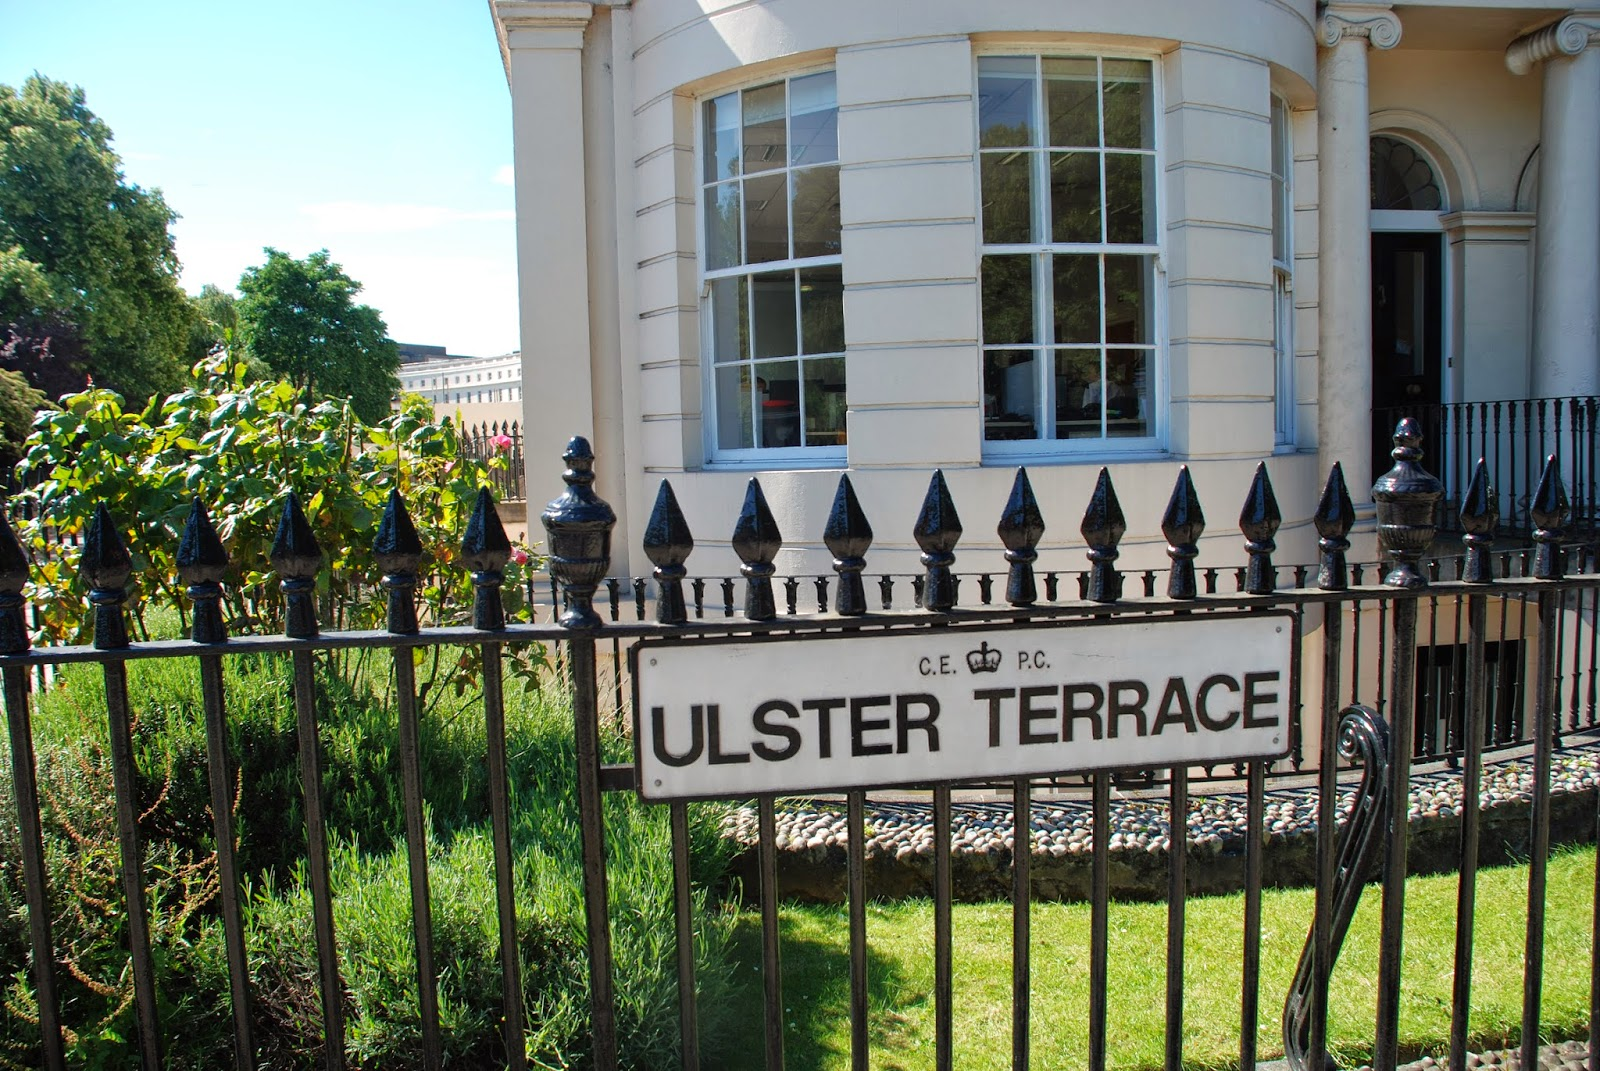 Ulster Terrace, London